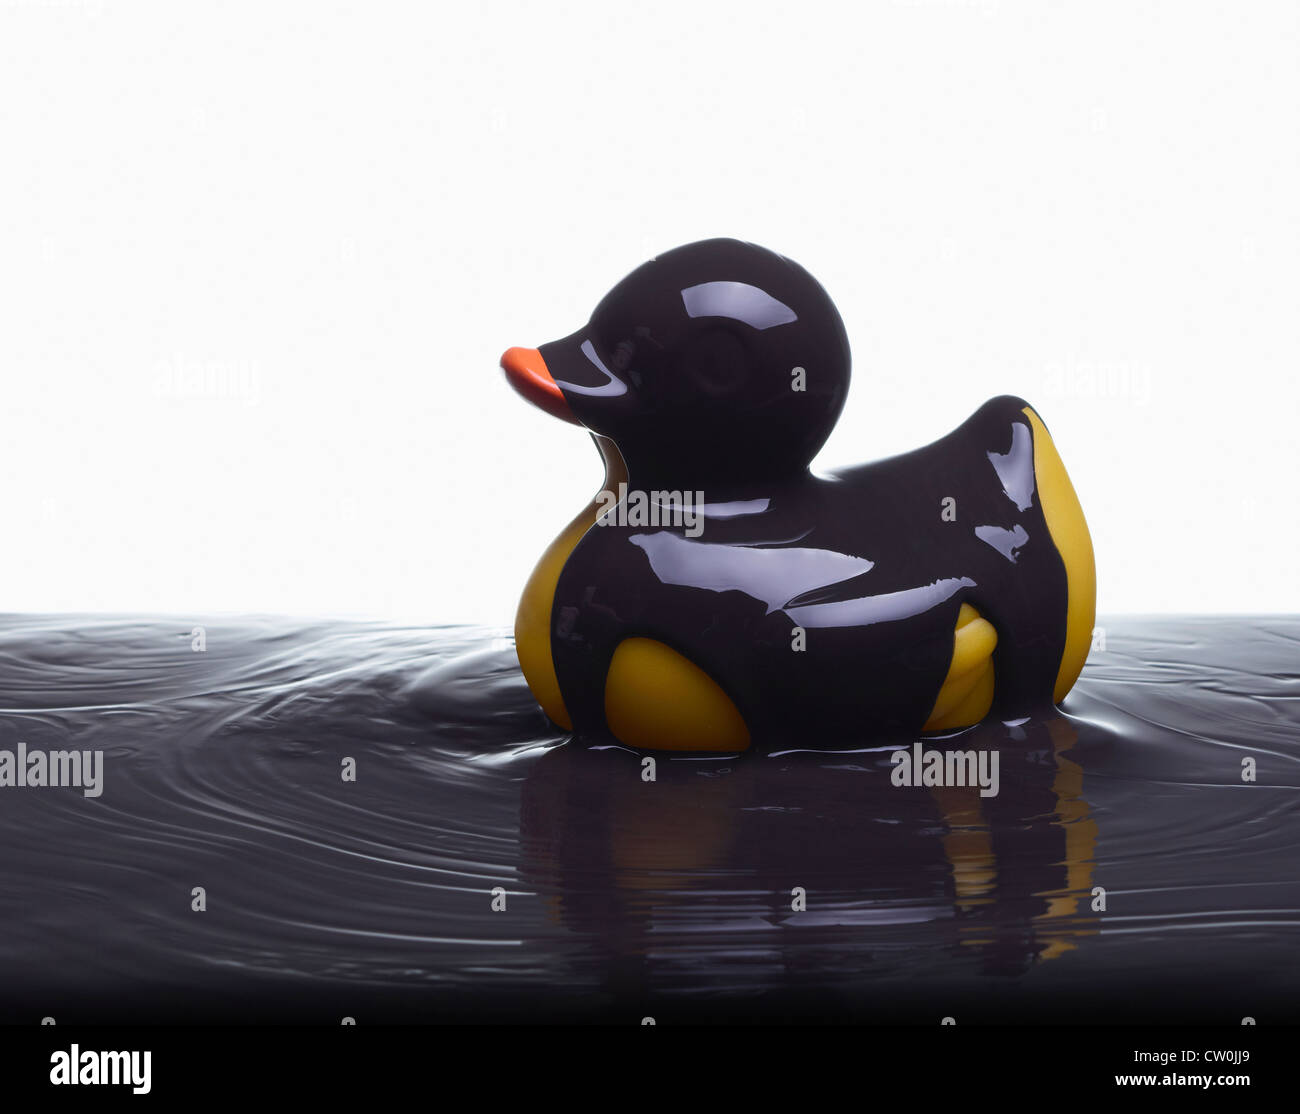 rubber duck stock photos u0026 rubber duck stock images alamy